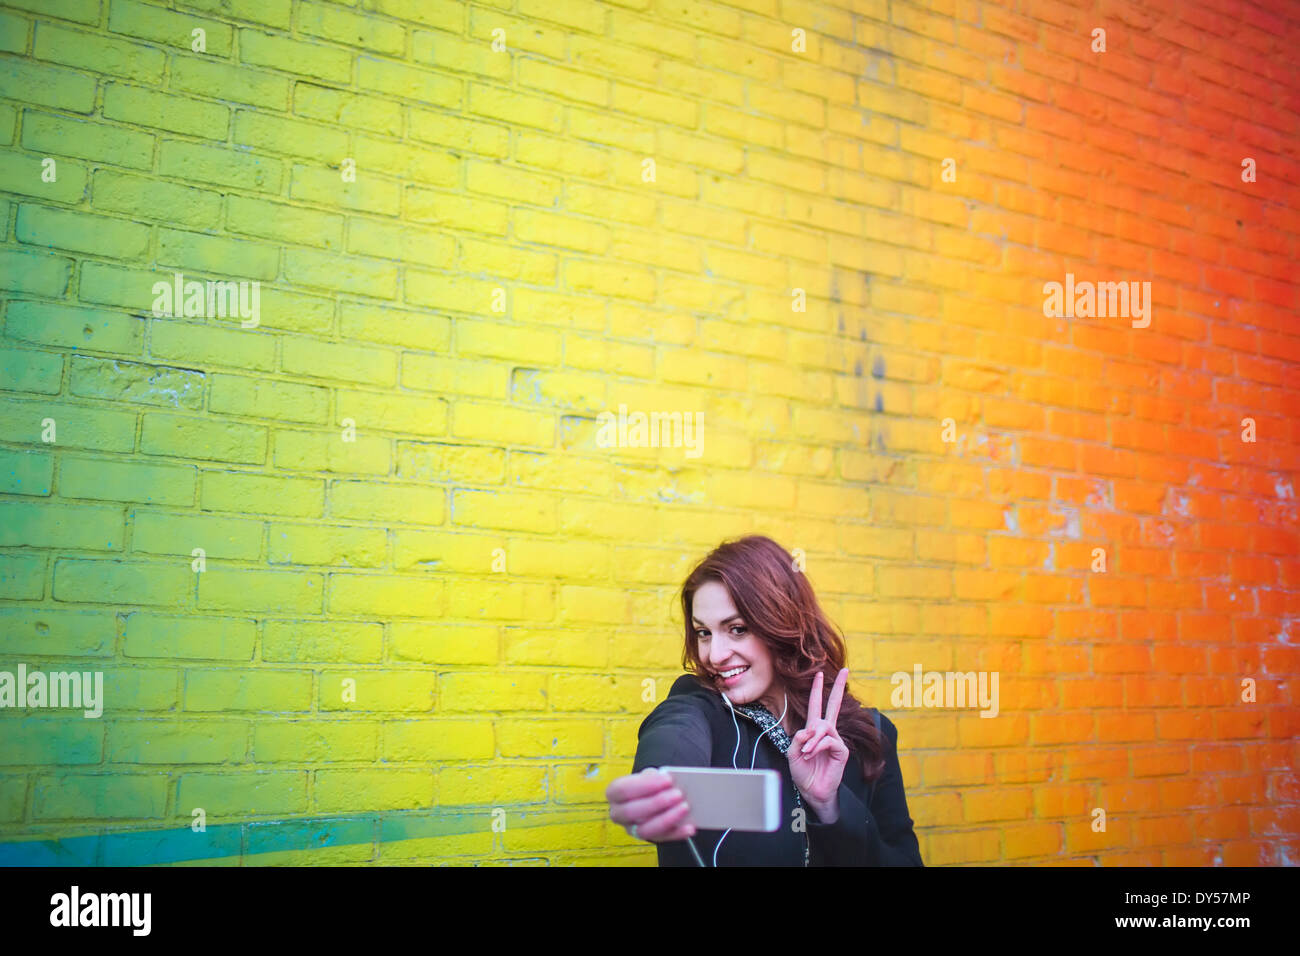 Young woman taking self portrait next to yellow wall - Stock Image